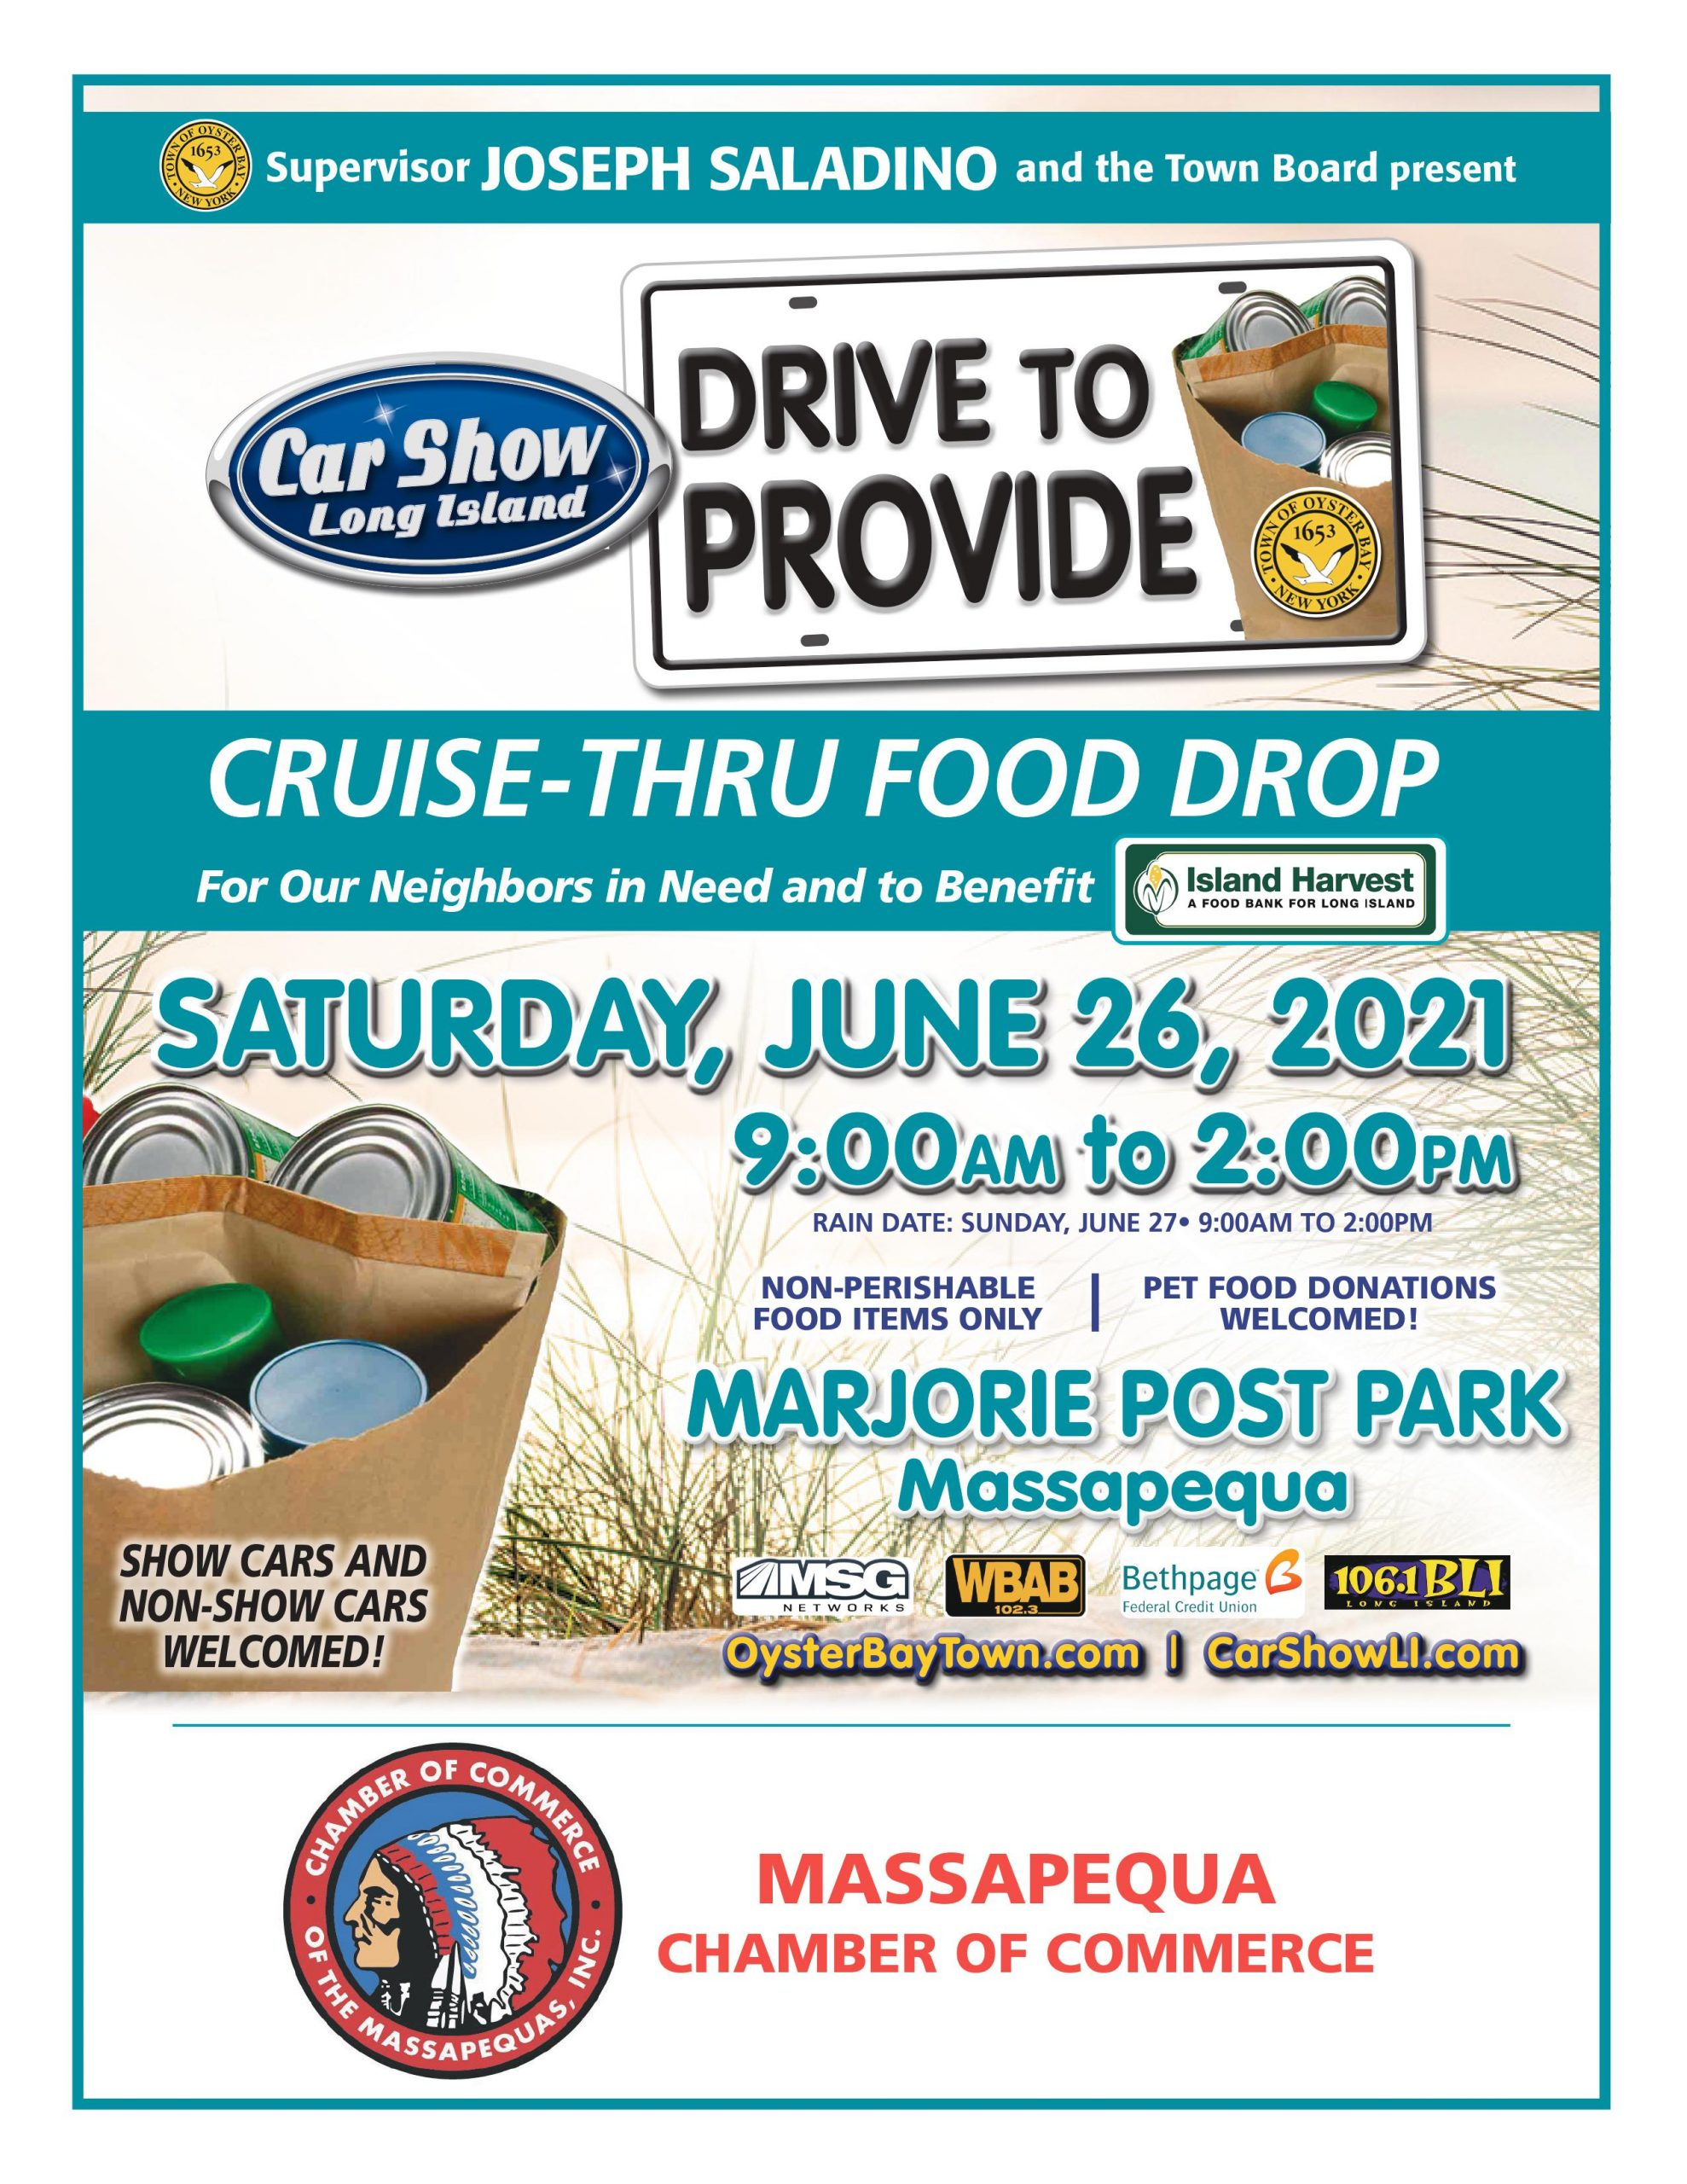 Town of Oyster Bay Drive to Provide / Car Show Long Island @ Marjorie Post Park in Massapequa